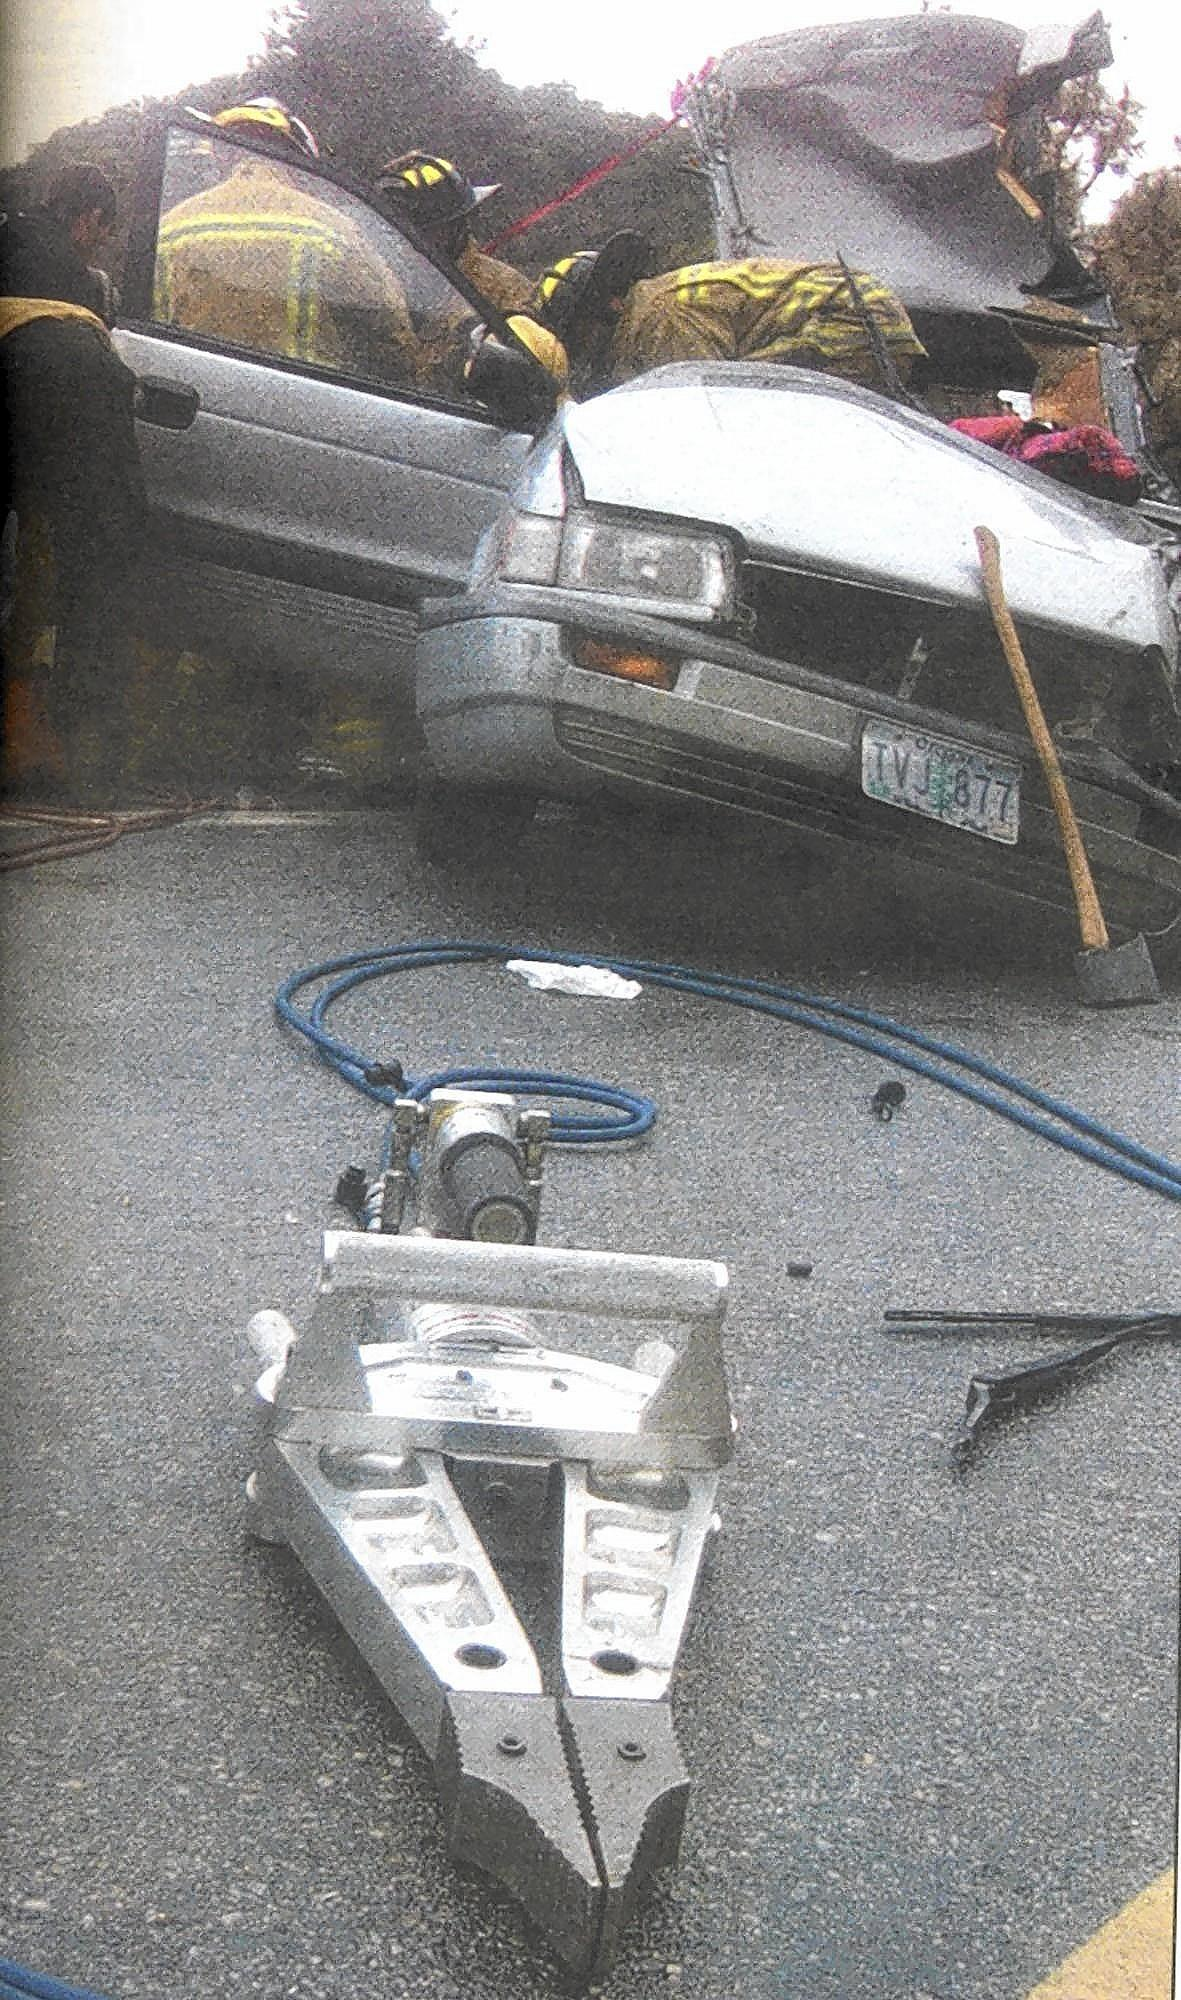 The Jaws of Life were used to peel back the top of a 1993 Mitsubishi Expo so rescuers could extract its driver and a passenger after the car collided on Angeles Crest Highway with a Forest Service truck on Feb. 20, 2004. The 23-year-old driver of the Expo did not survive his injuries.